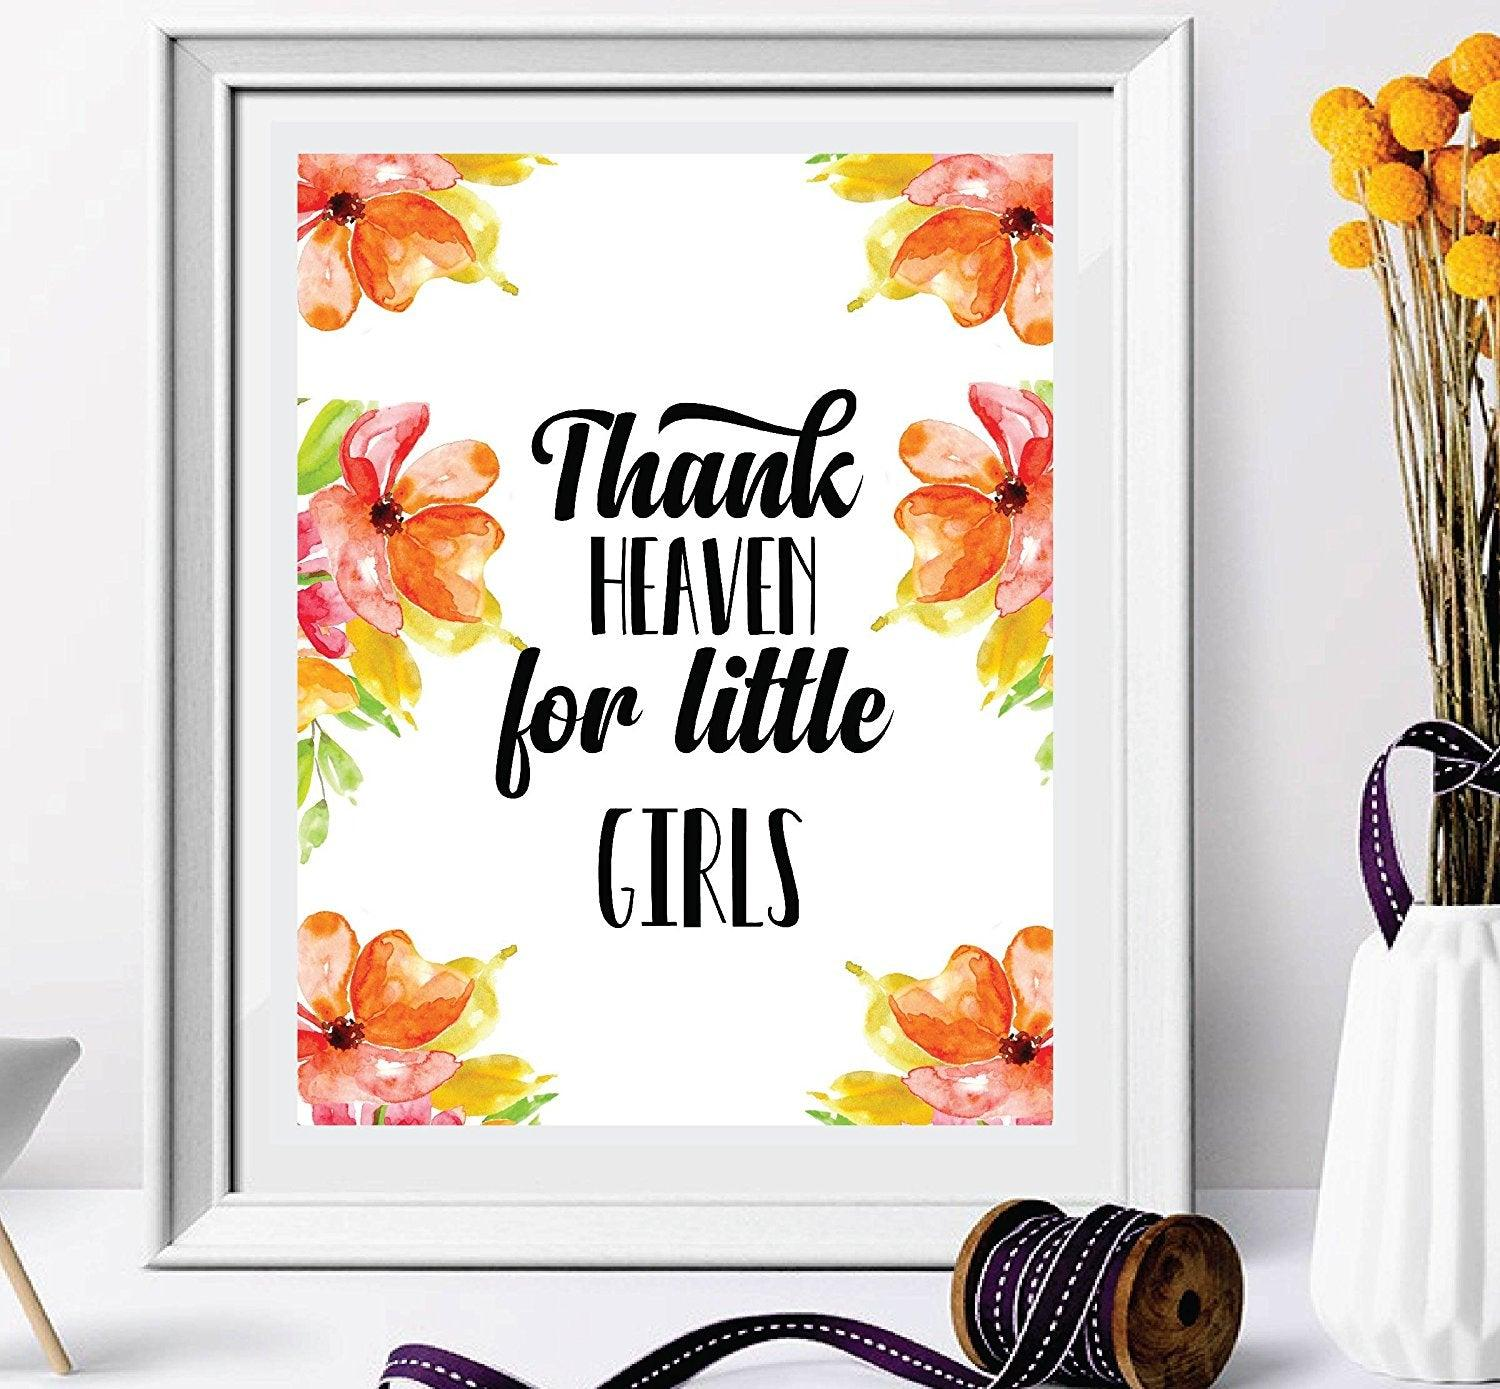 Thank Heaven For Little Girls - wall art - Nursery Décor - Nursery Wall Art - Nursery Quote - Girl Nursery Decor - Wall Decor-kids room decor-Peach Nursery print Watercolor floral wreath - BOSTON CREATIVE COMPANY